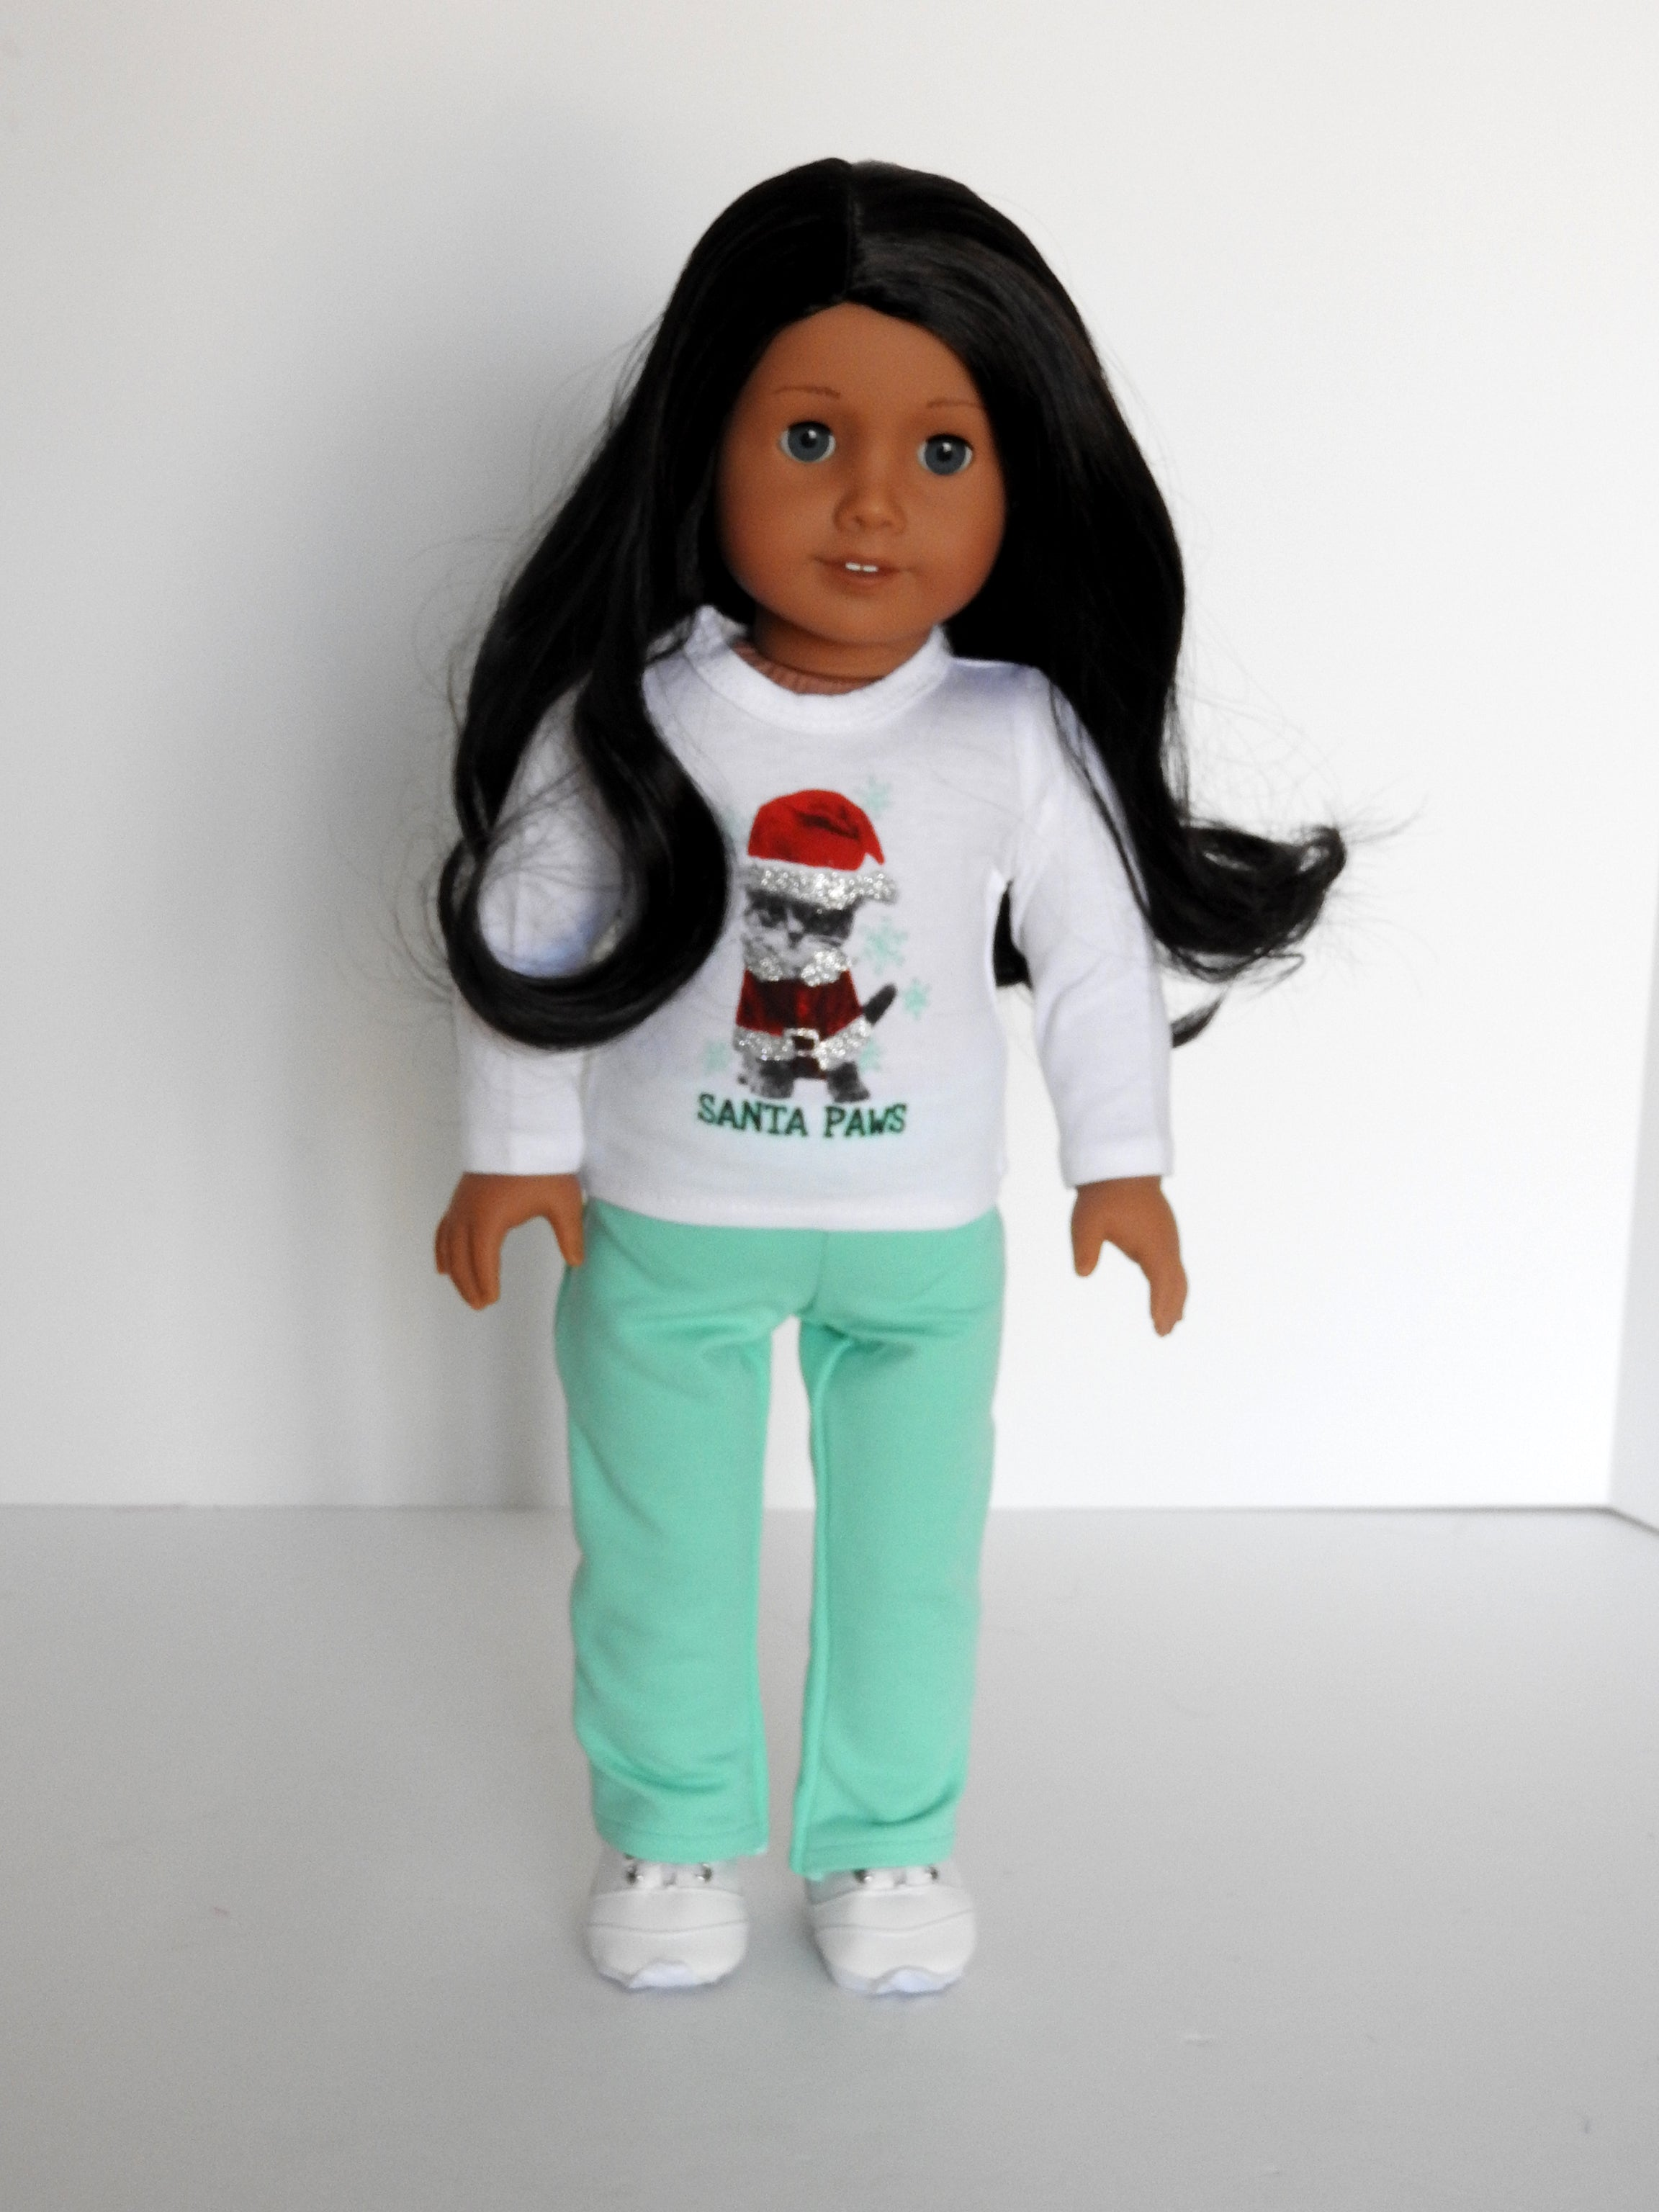 18 Inch Doll  Santa Graphic Top, Yoga Pants, Shoes fits American Girl Doll